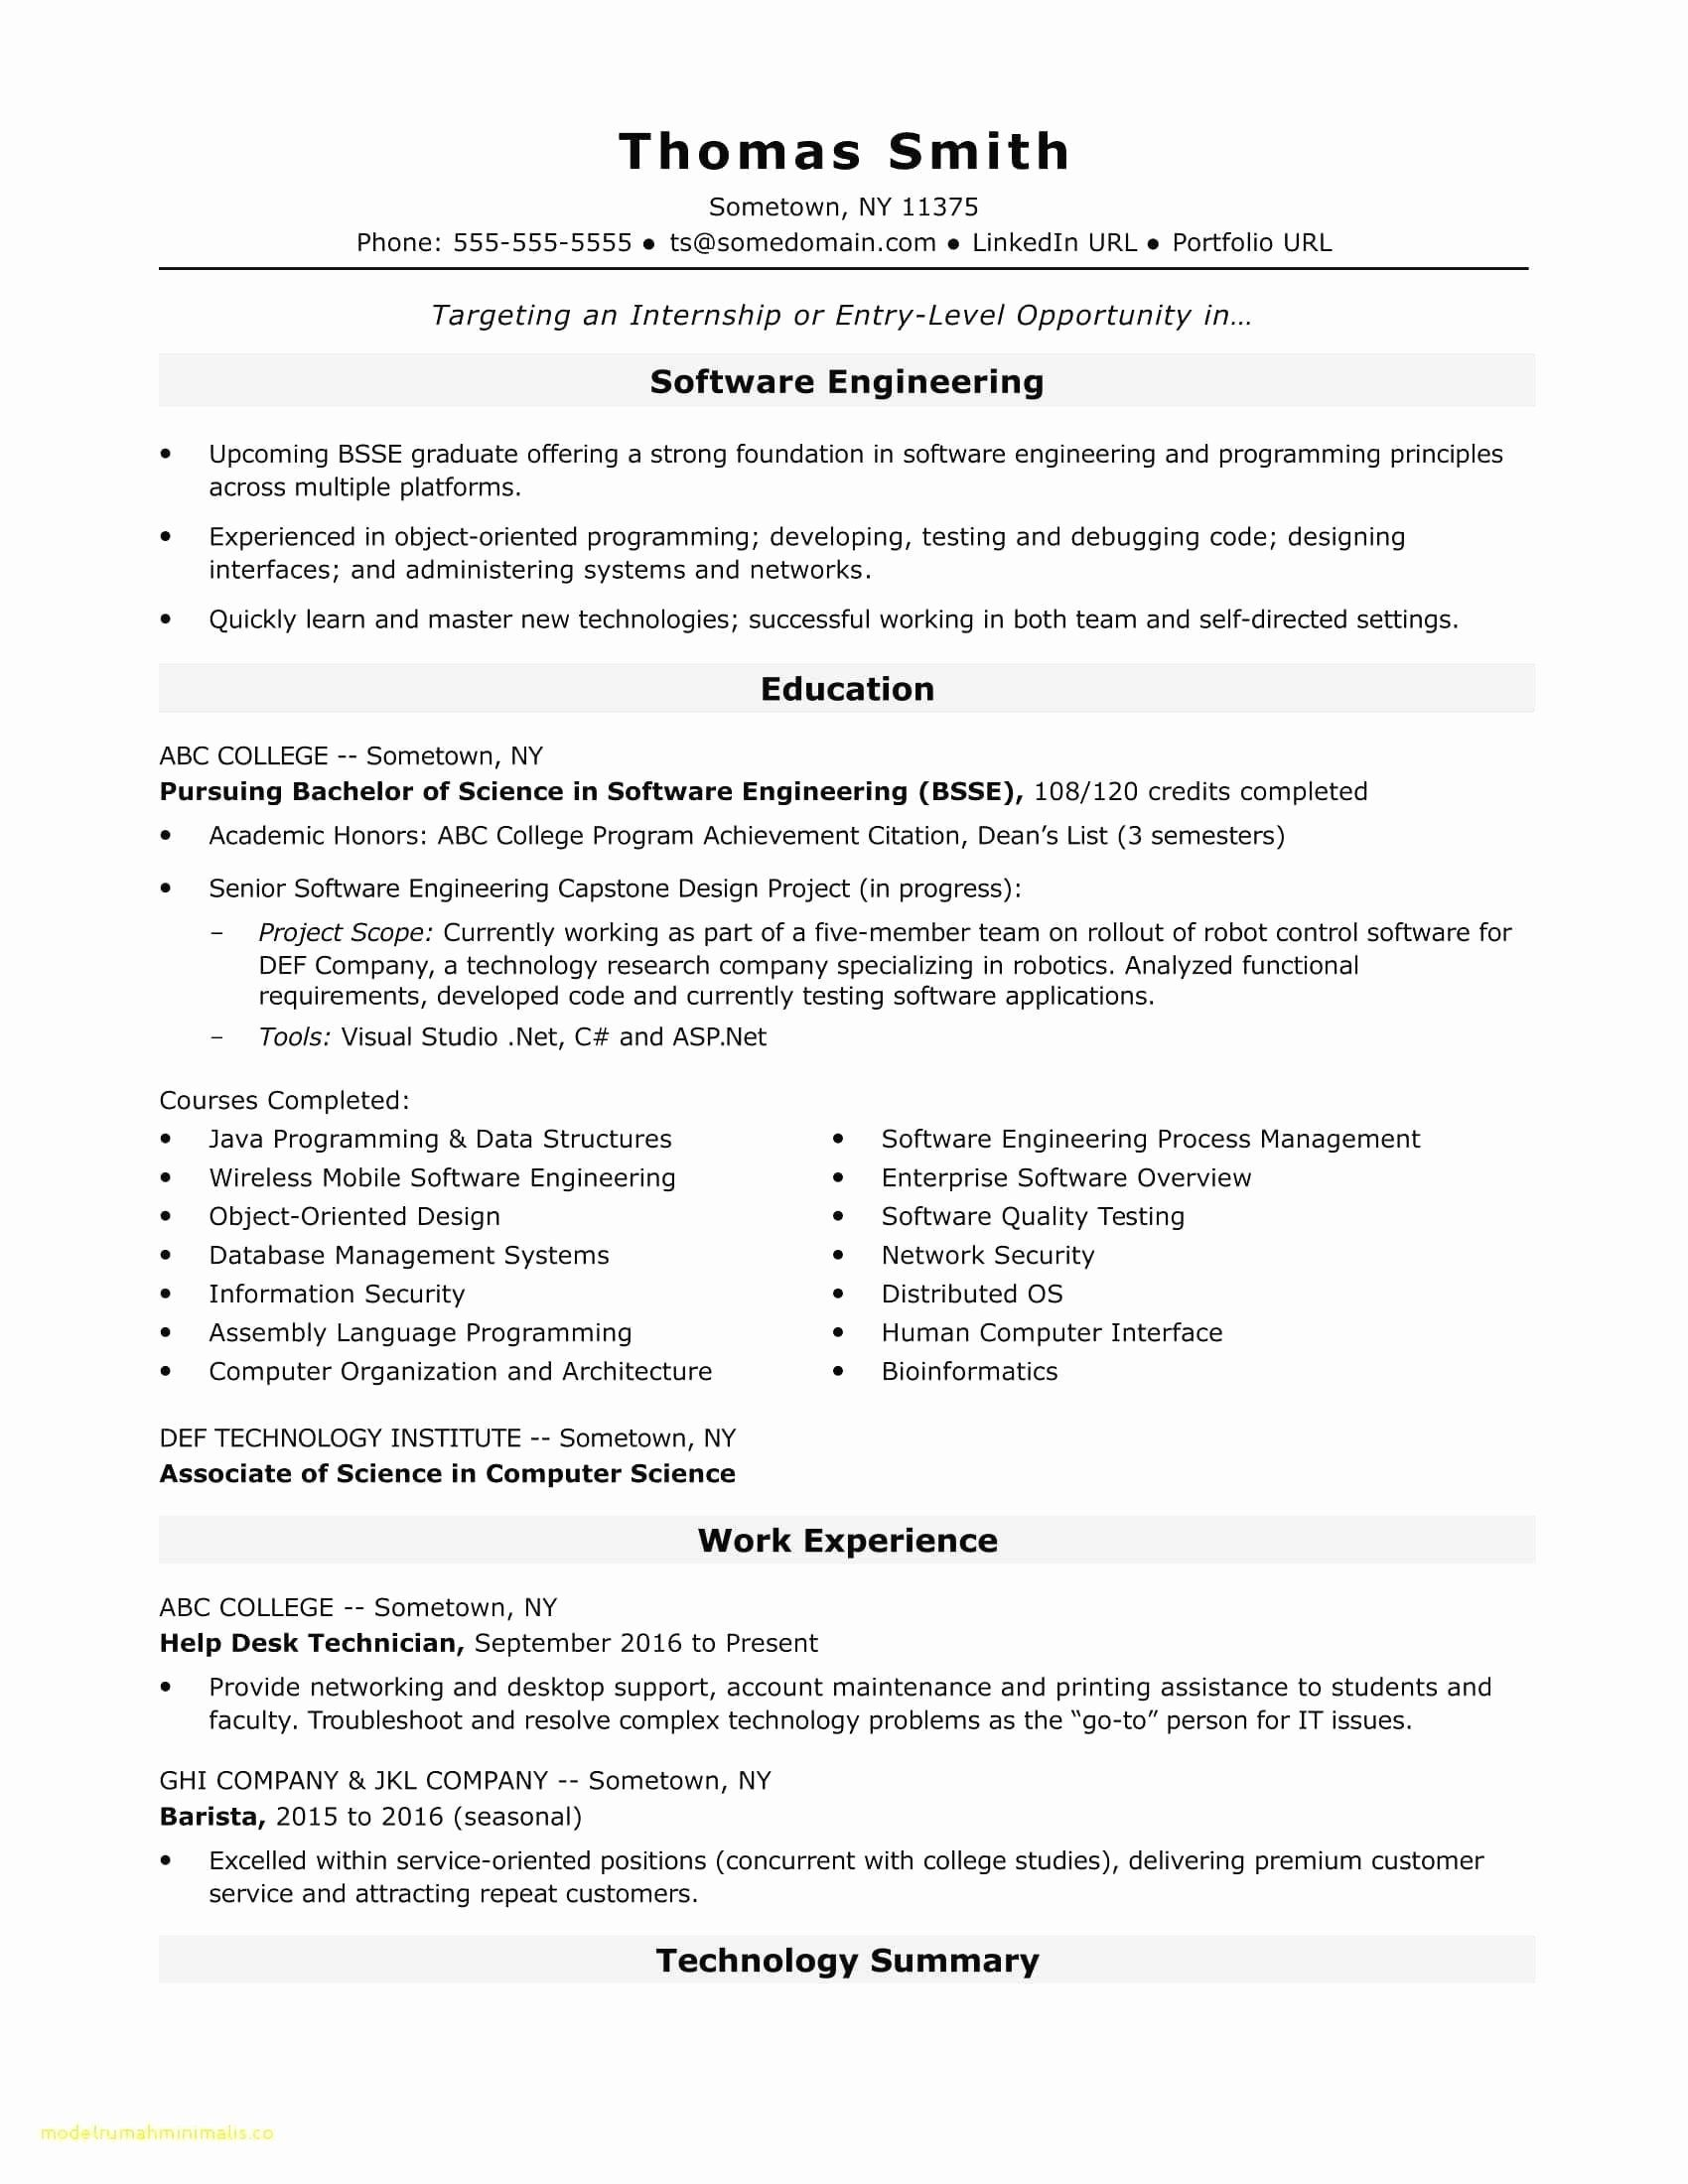 Nist Information Security Policy Template In 2020 Software Engineer